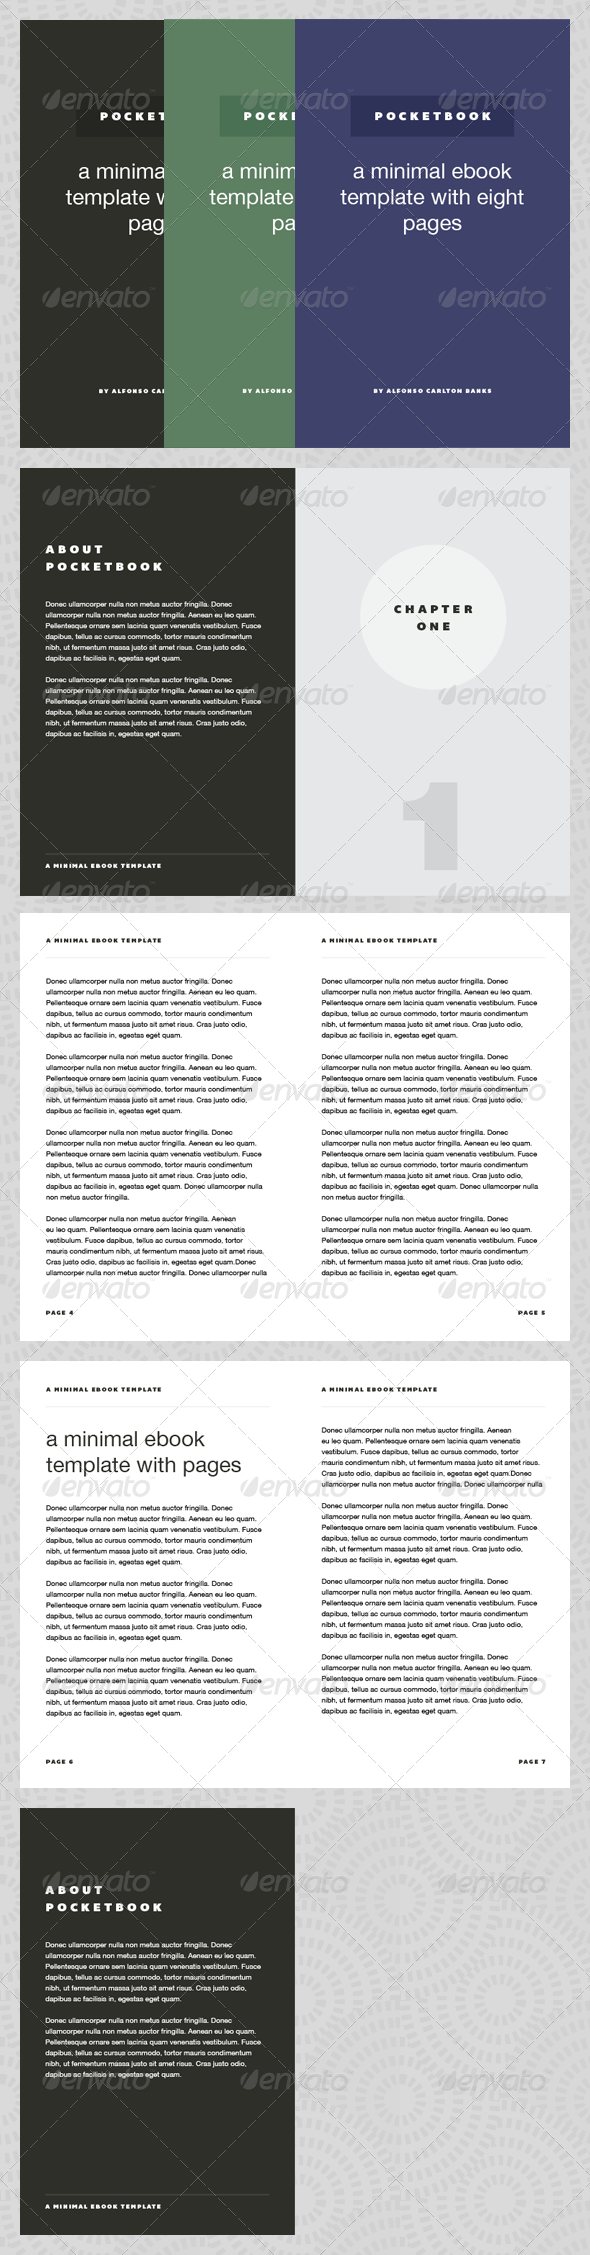 Pocket Book - eBook Template - Miscellaneous Print Templates